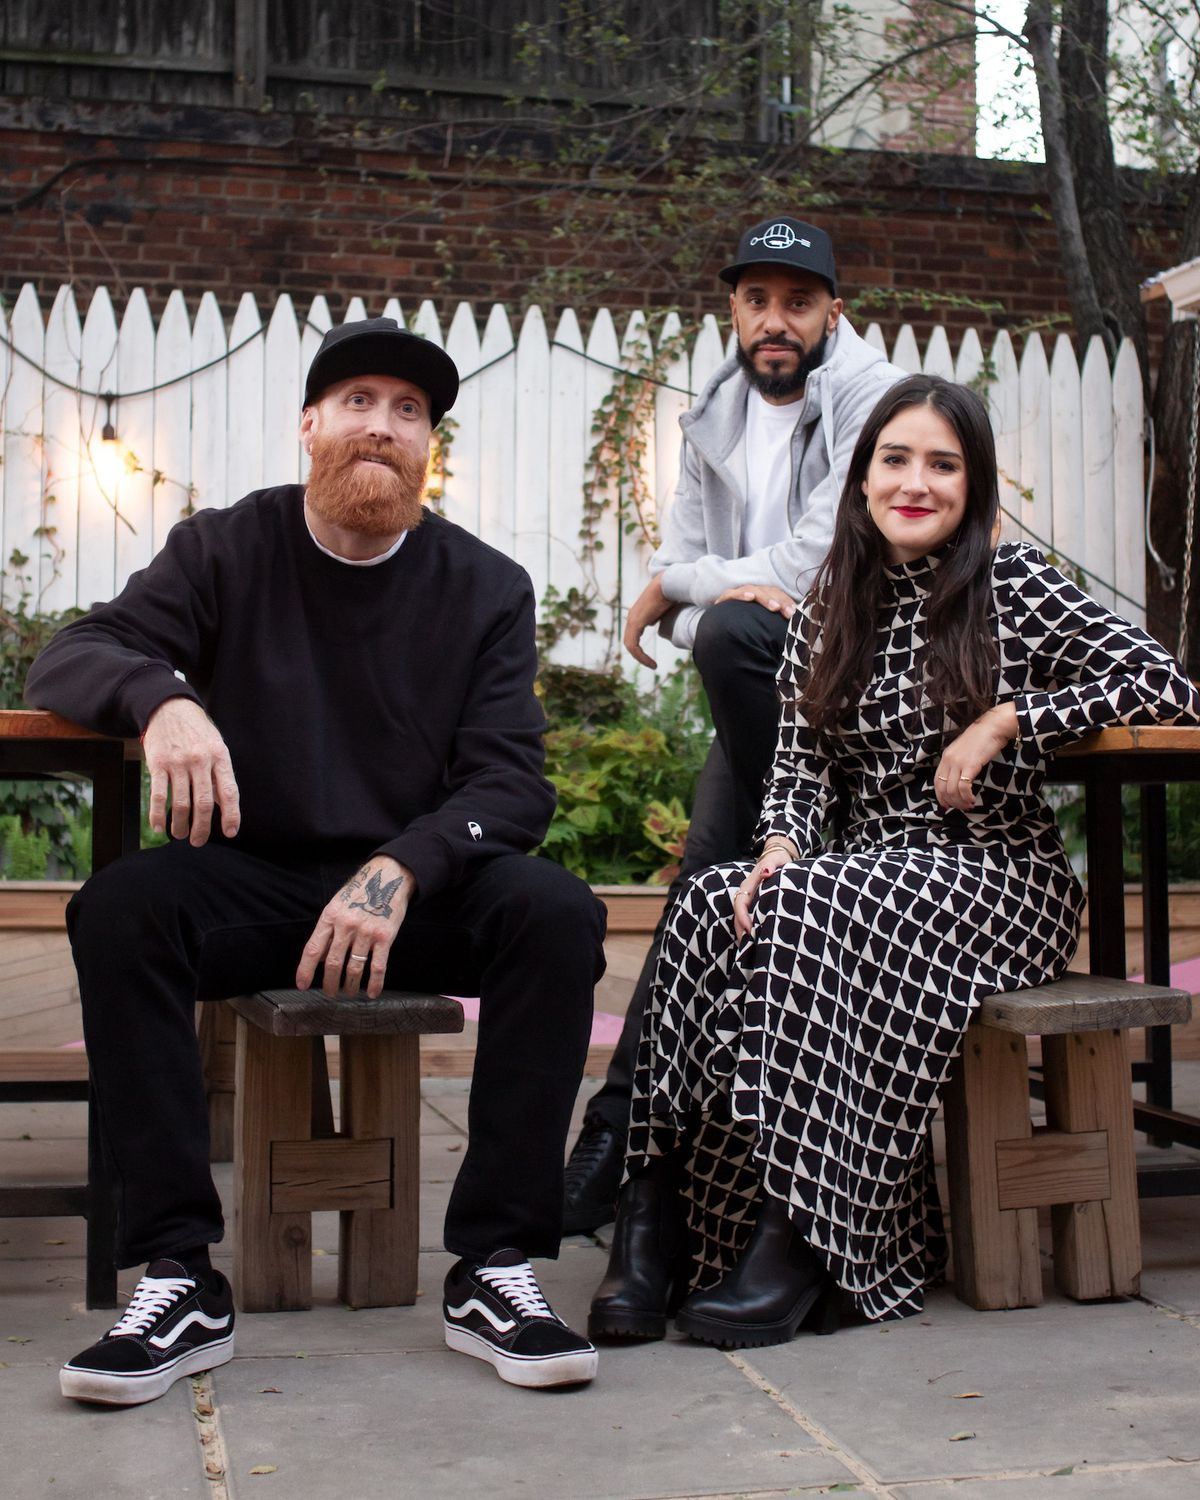 Three people sitting in a backyard are looking into the camera for a portrait style photo